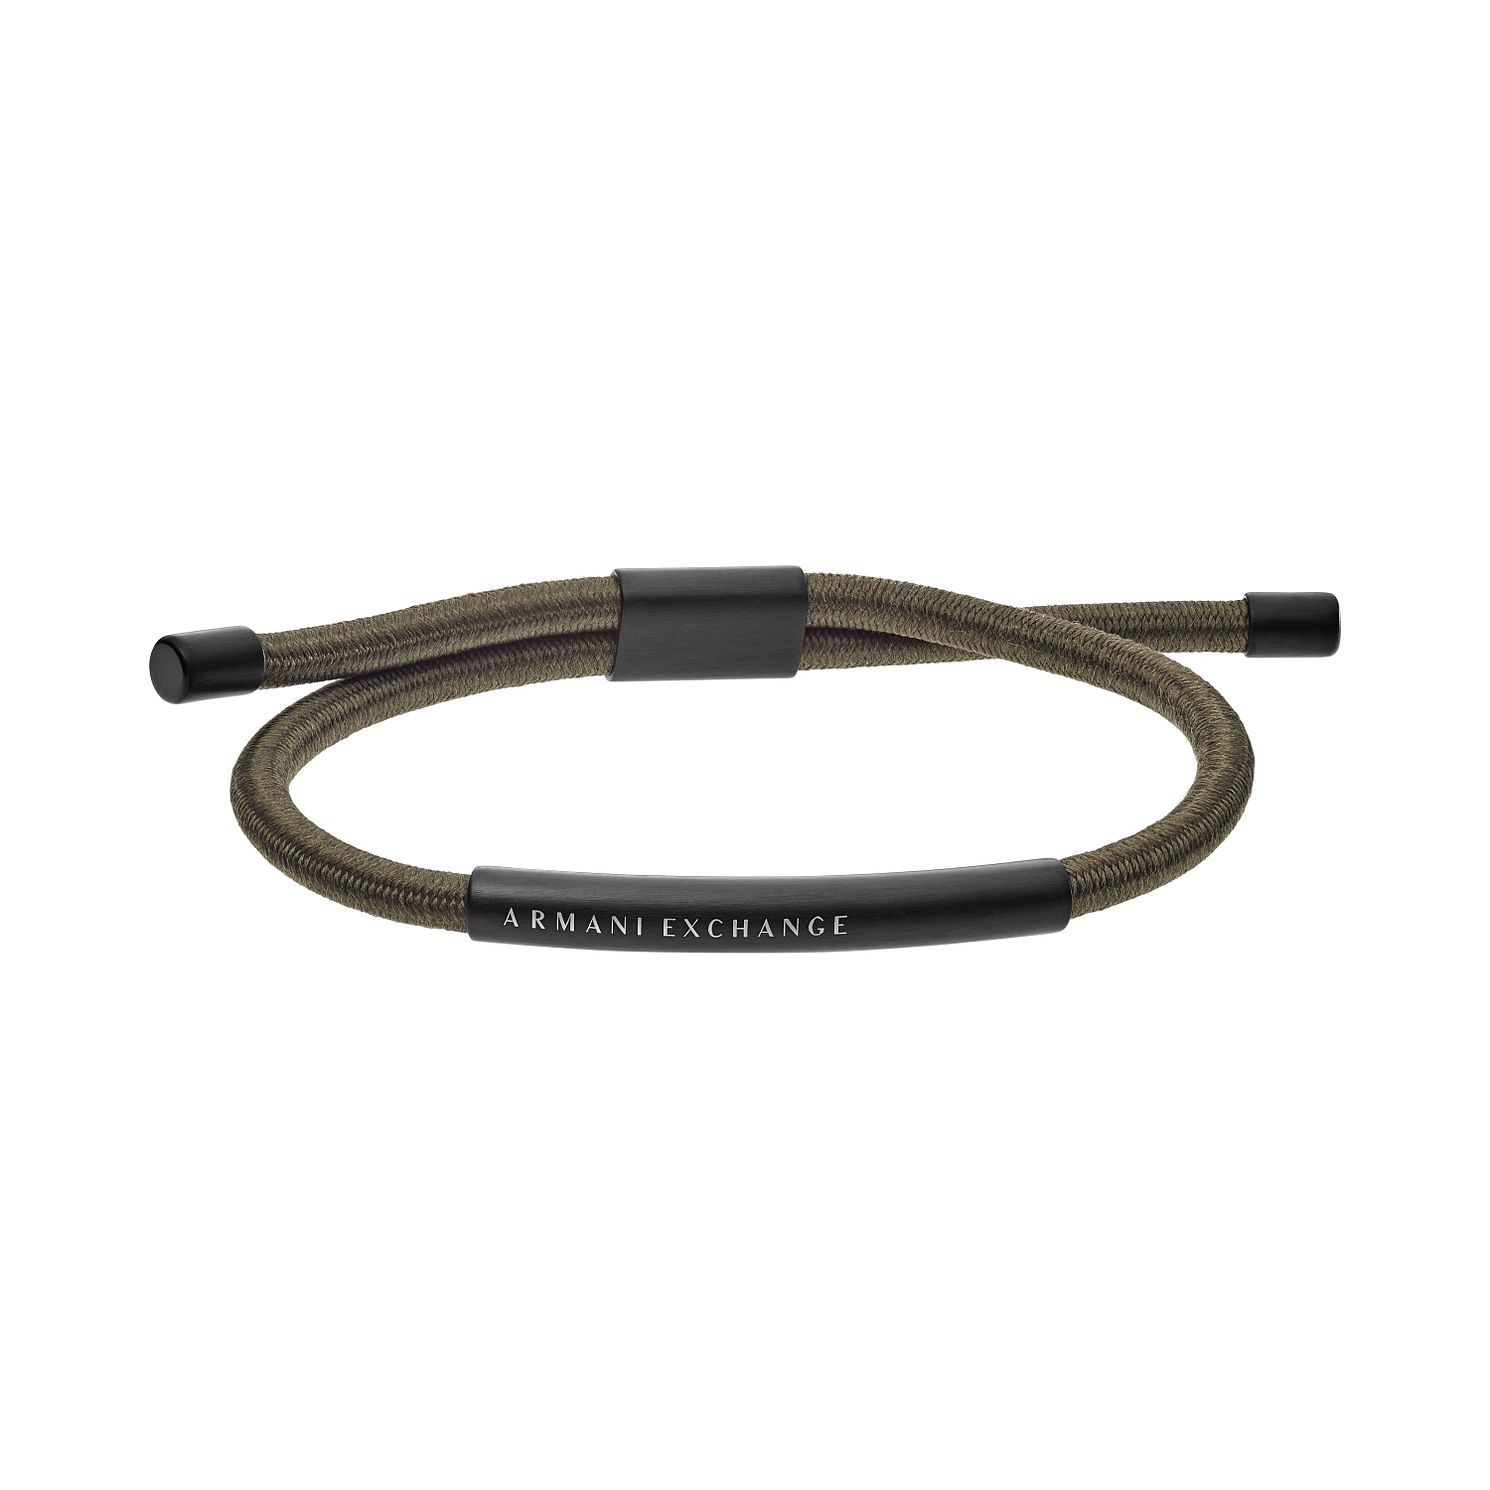 Armani Exchange Men's Stainless Steel Green Leather Bracelet - Product number 4012194